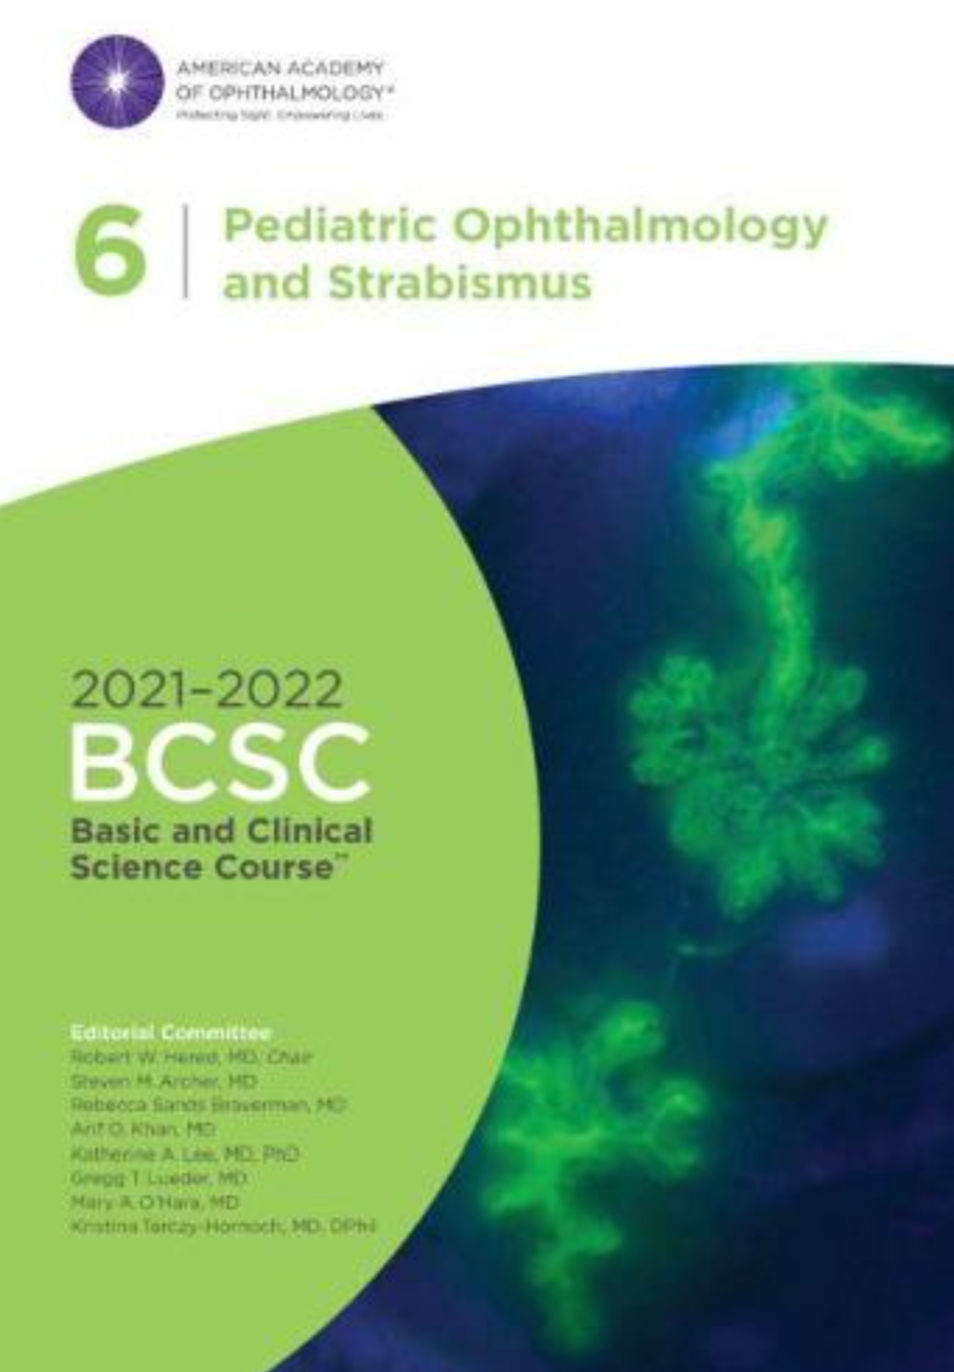 2021-2022 Basic and Clinical Science Course, Section 06: Pediatric Ophthalmology and Strabismus